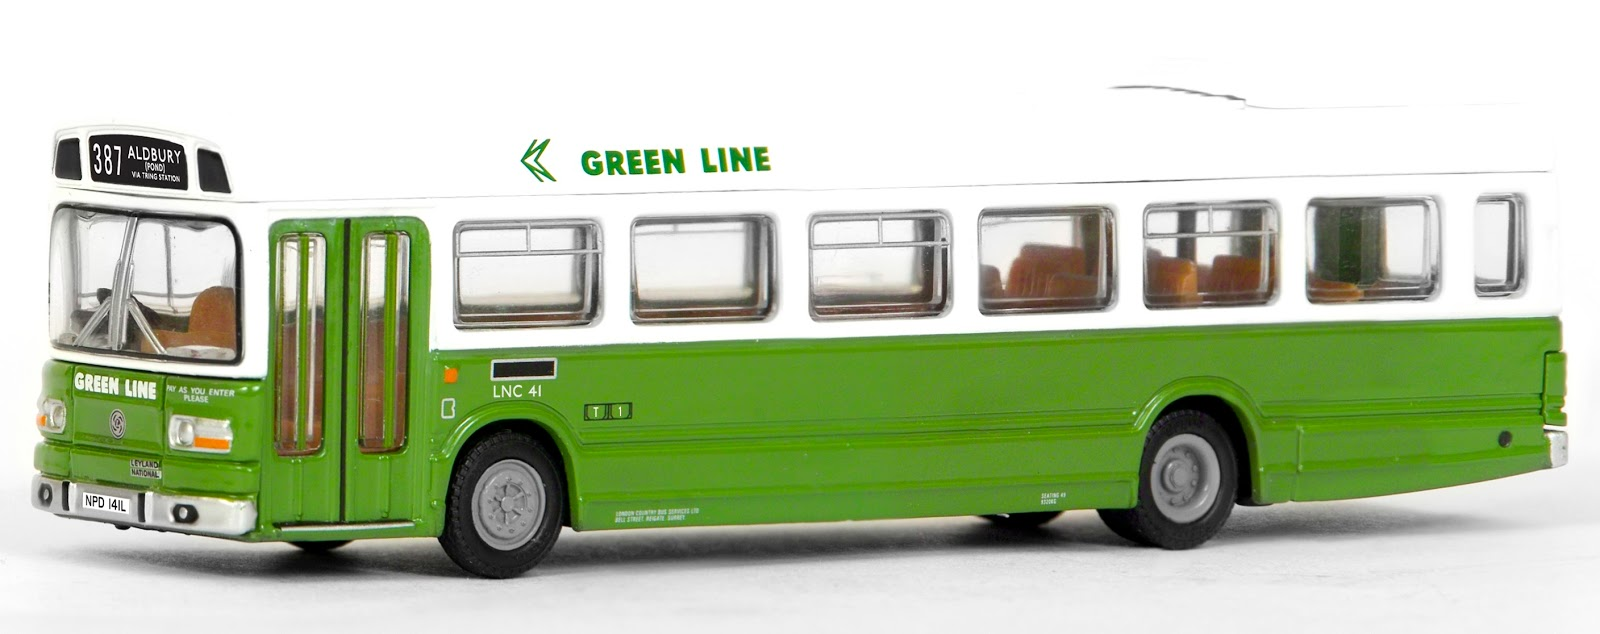 EFE 17311 - Leyland National MkI Long 1 Door - Green Line NBC  The Leyland National is a very popular model with our collectors and this Green Line N.B.C. version is sure to please. Registered NPD 141L, fleet number LNC 41 works route 387 to Aldbury a lovely little Village not far from the vehicles base at Tring Garage. RRP £32.50